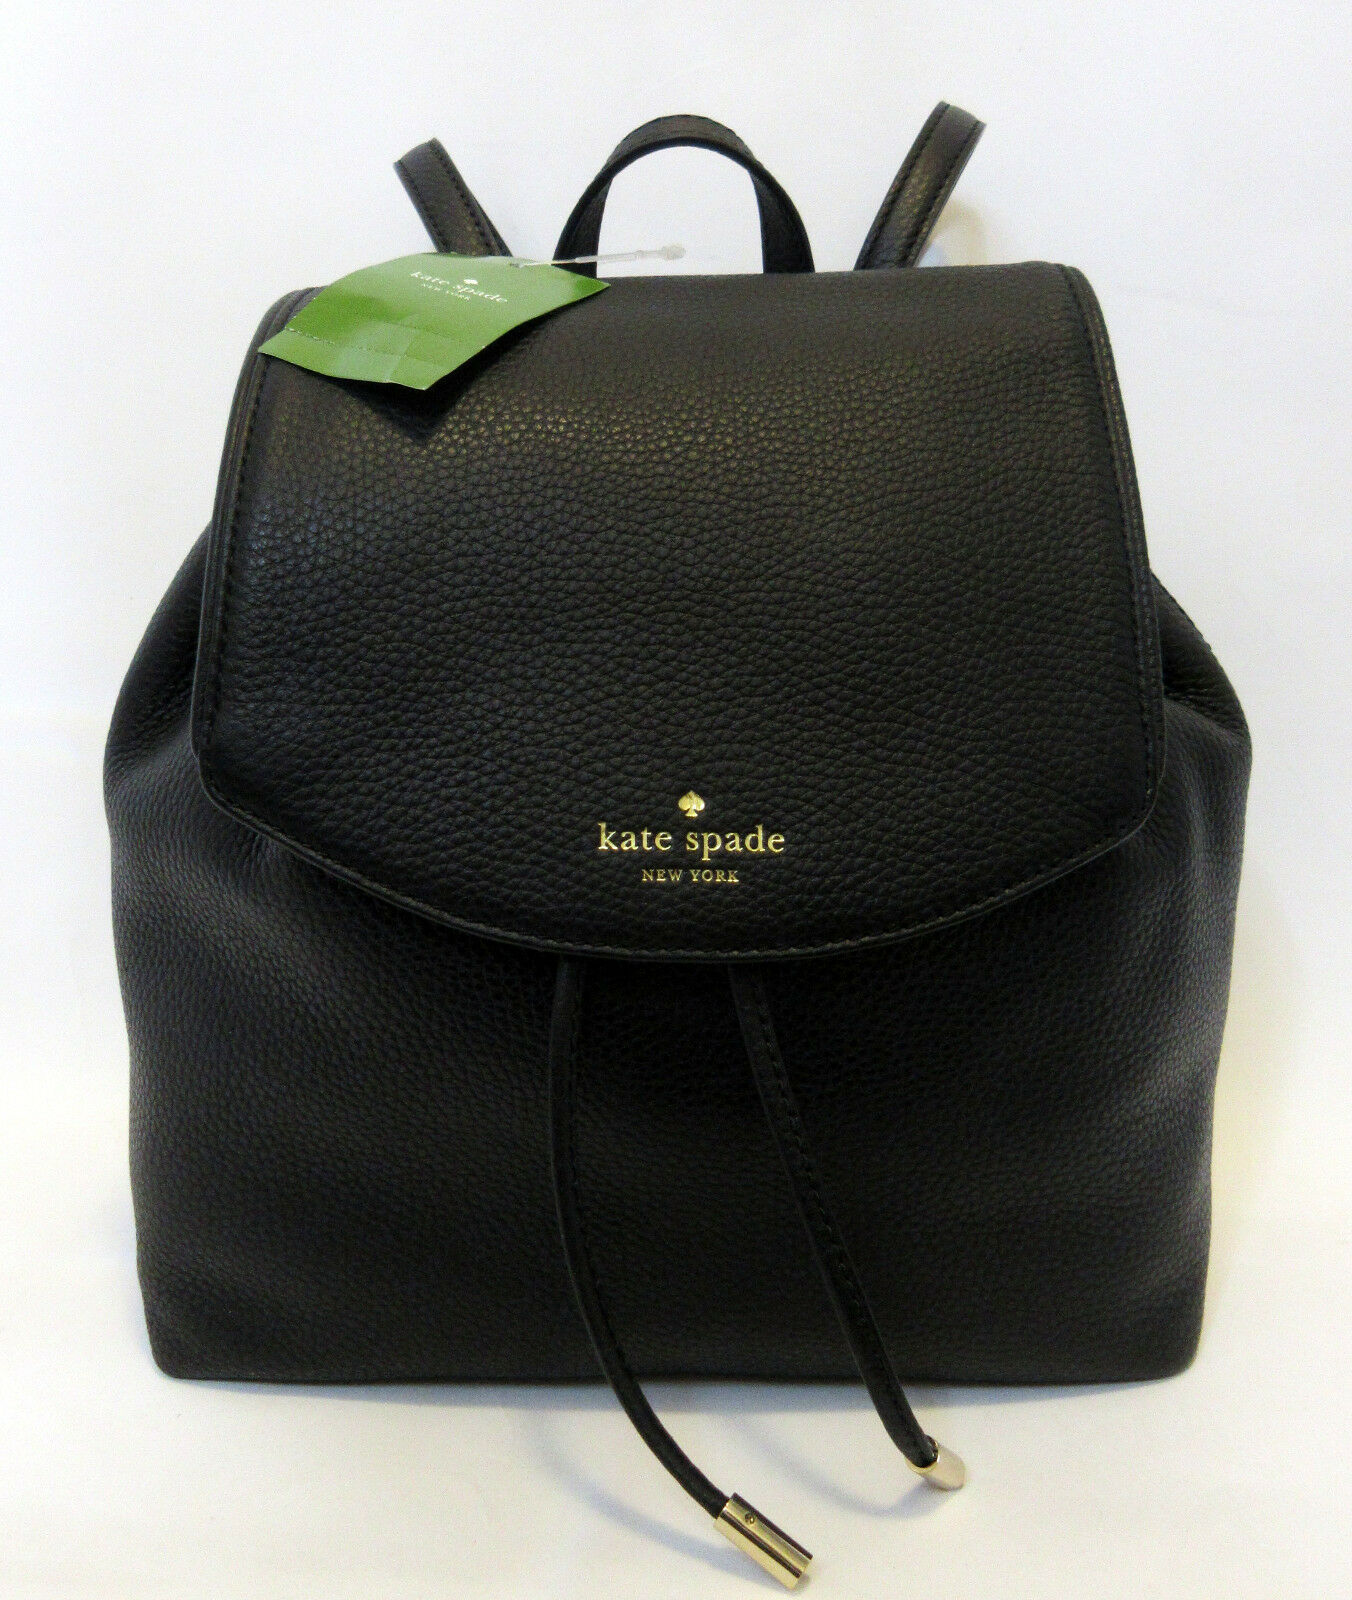 Kate Spade Unprofound Breezy Mulberry Street Backpack Black Book Bag Travel Bag $329